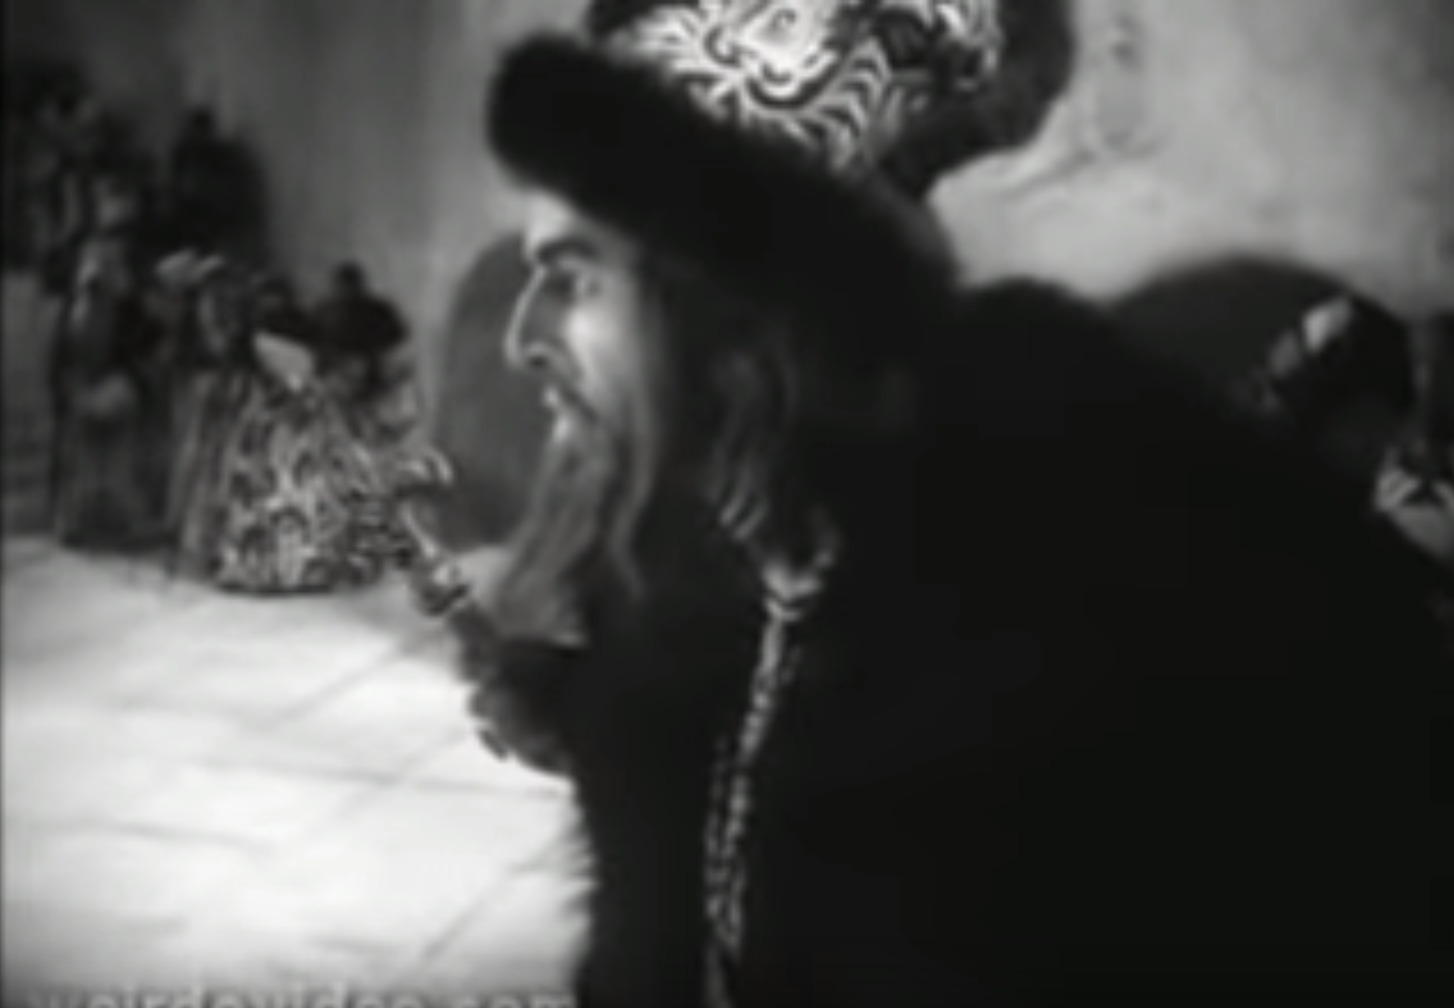 Sergei Eisenstein's Ivan the Terrible trailer - 1944/1958